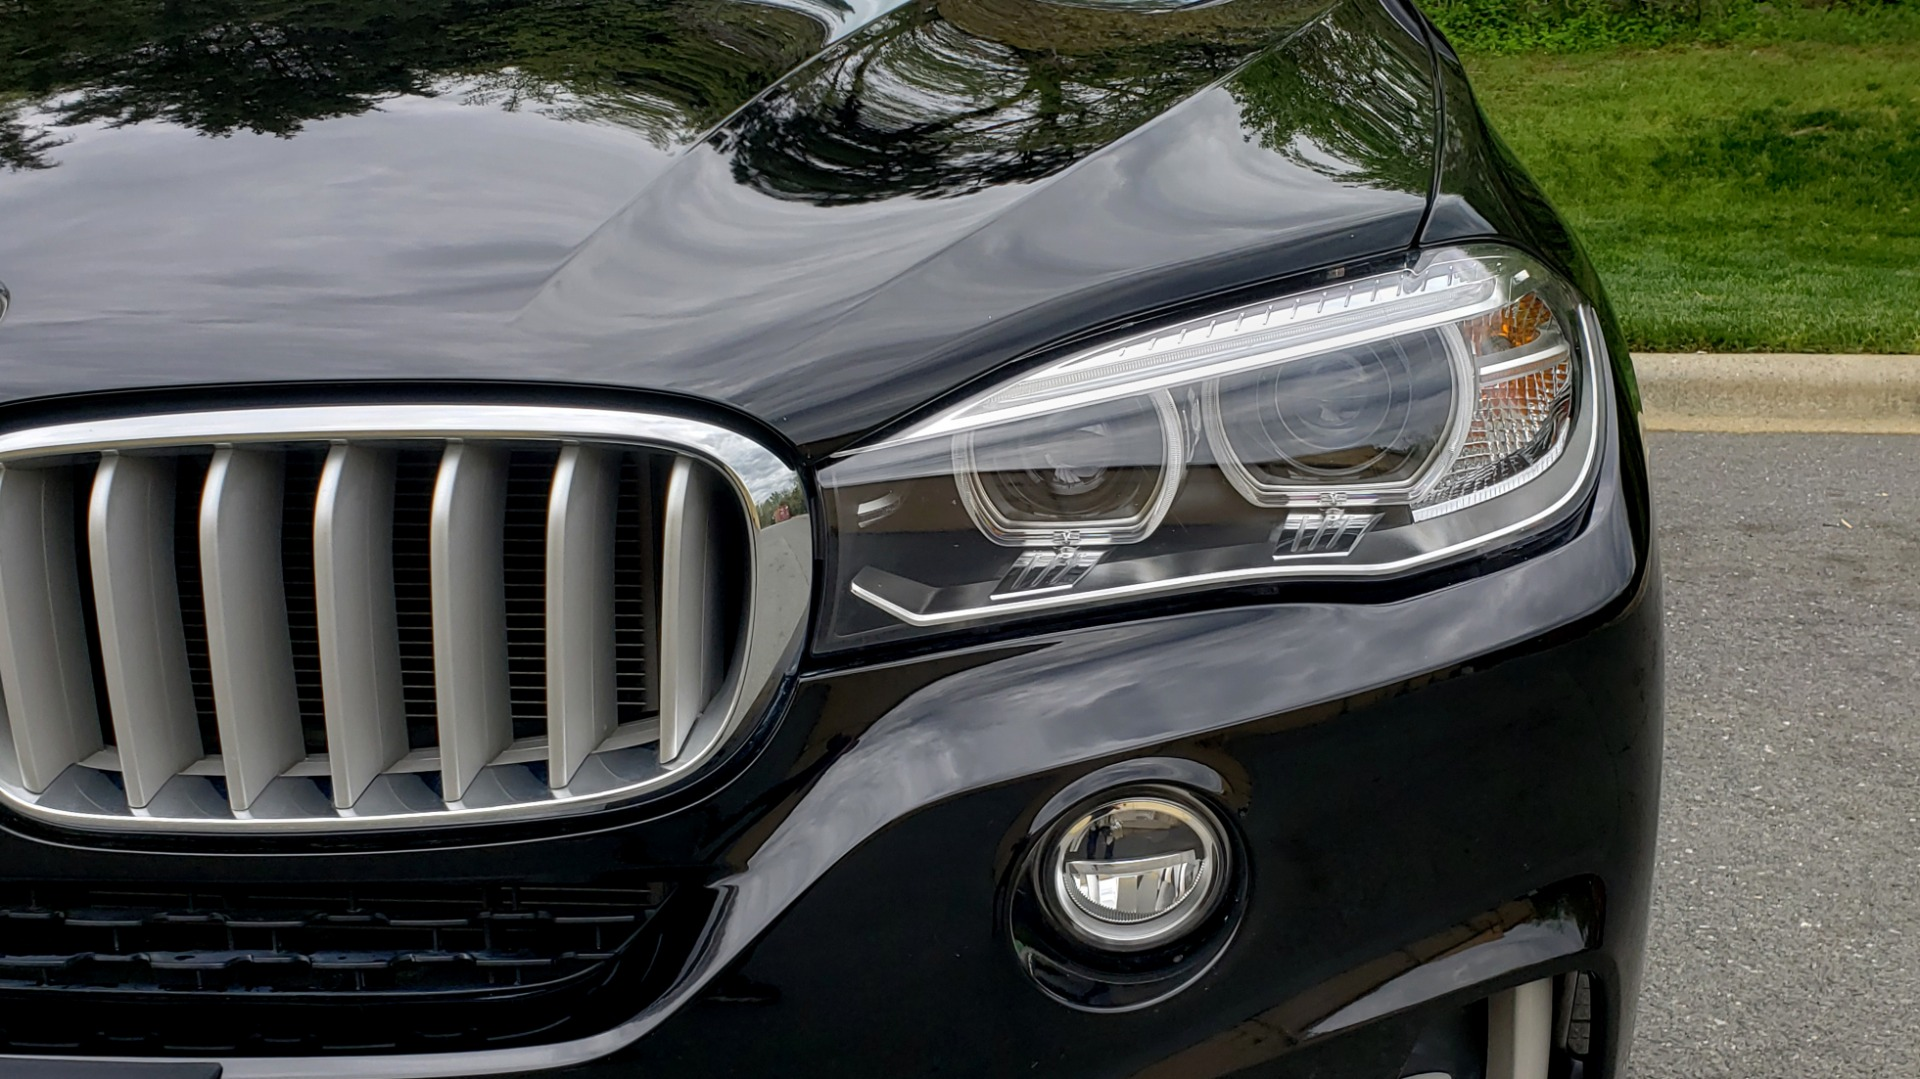 Used 2017 BMW X5 XDRIVE35I / NAV / SUNROOF / REARVIEW / HTD STS for sale Sold at Formula Imports in Charlotte NC 28227 28